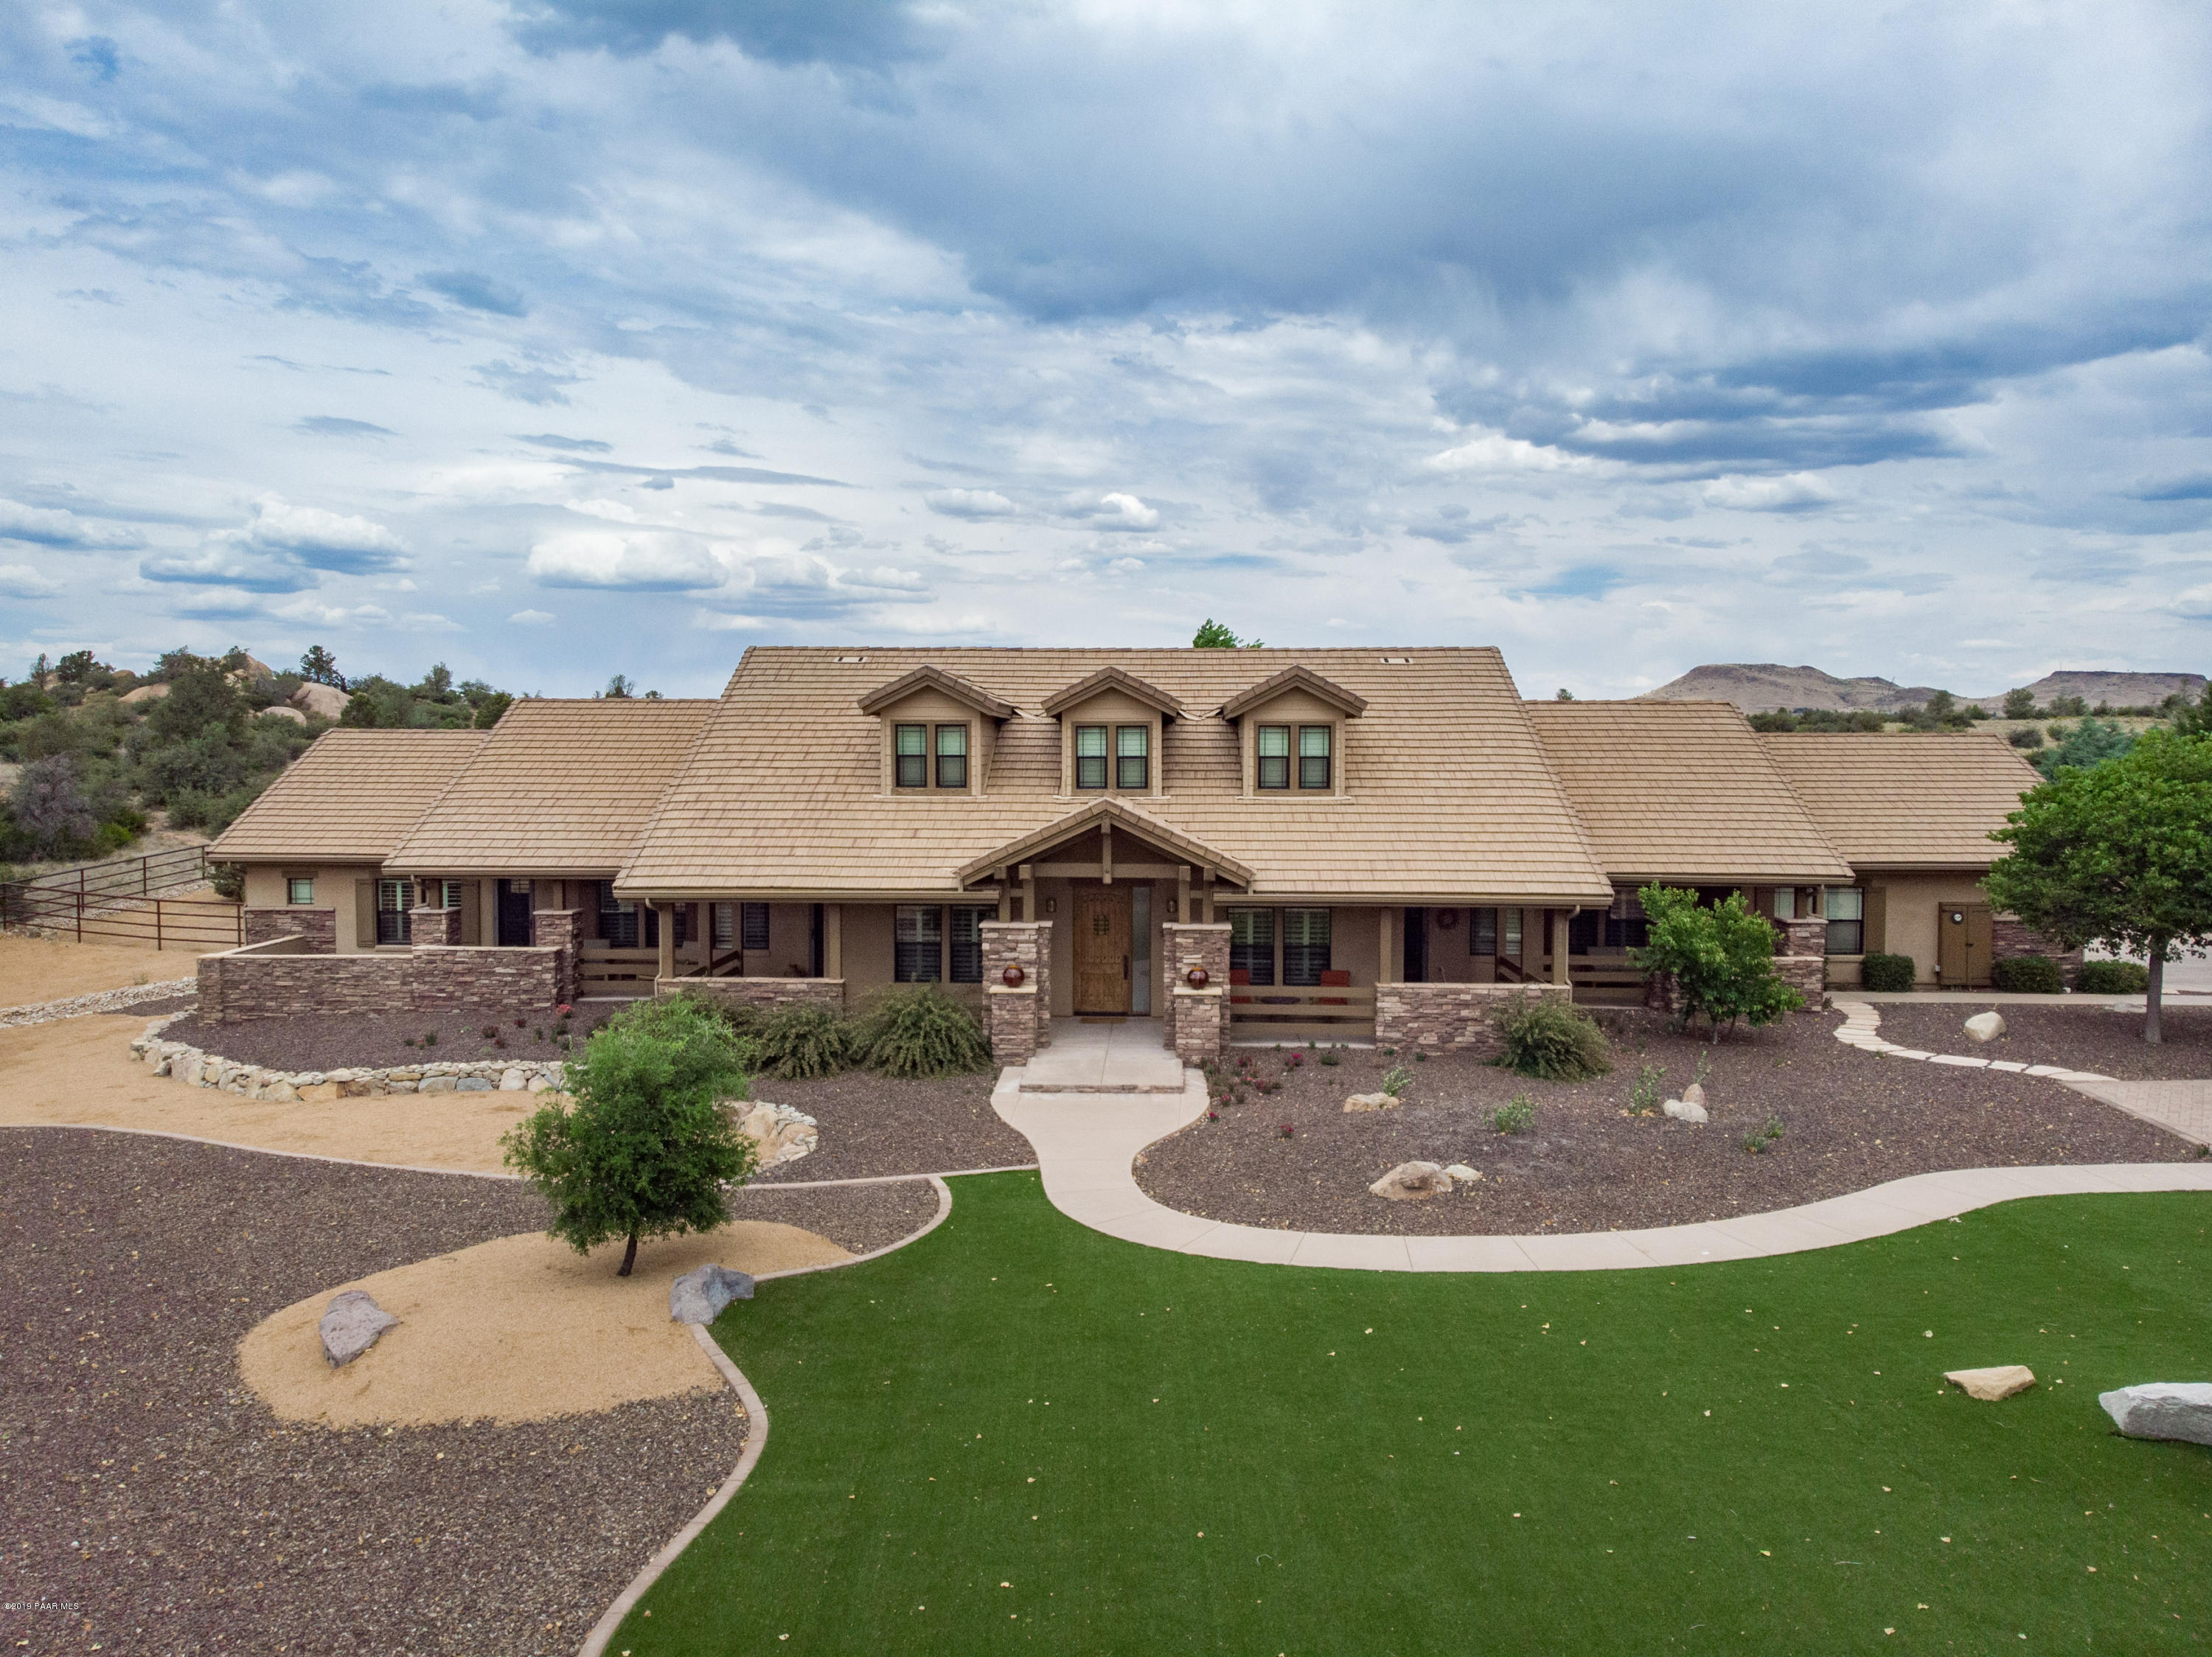 Photo of 9839 American Ranch, Prescott, AZ 86305